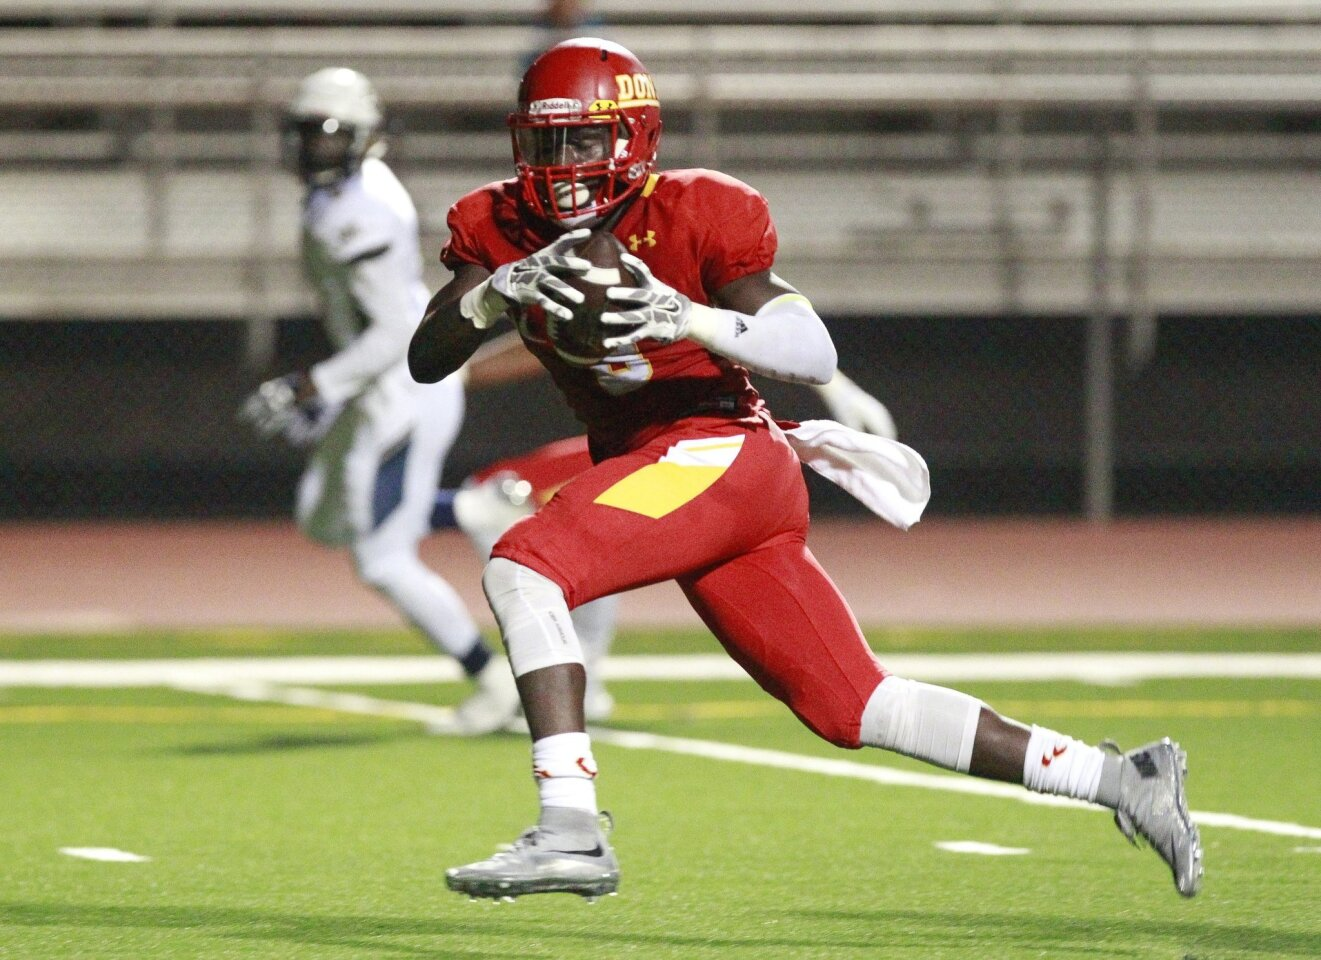 Cathedral Catholic plays in Honor Bowl